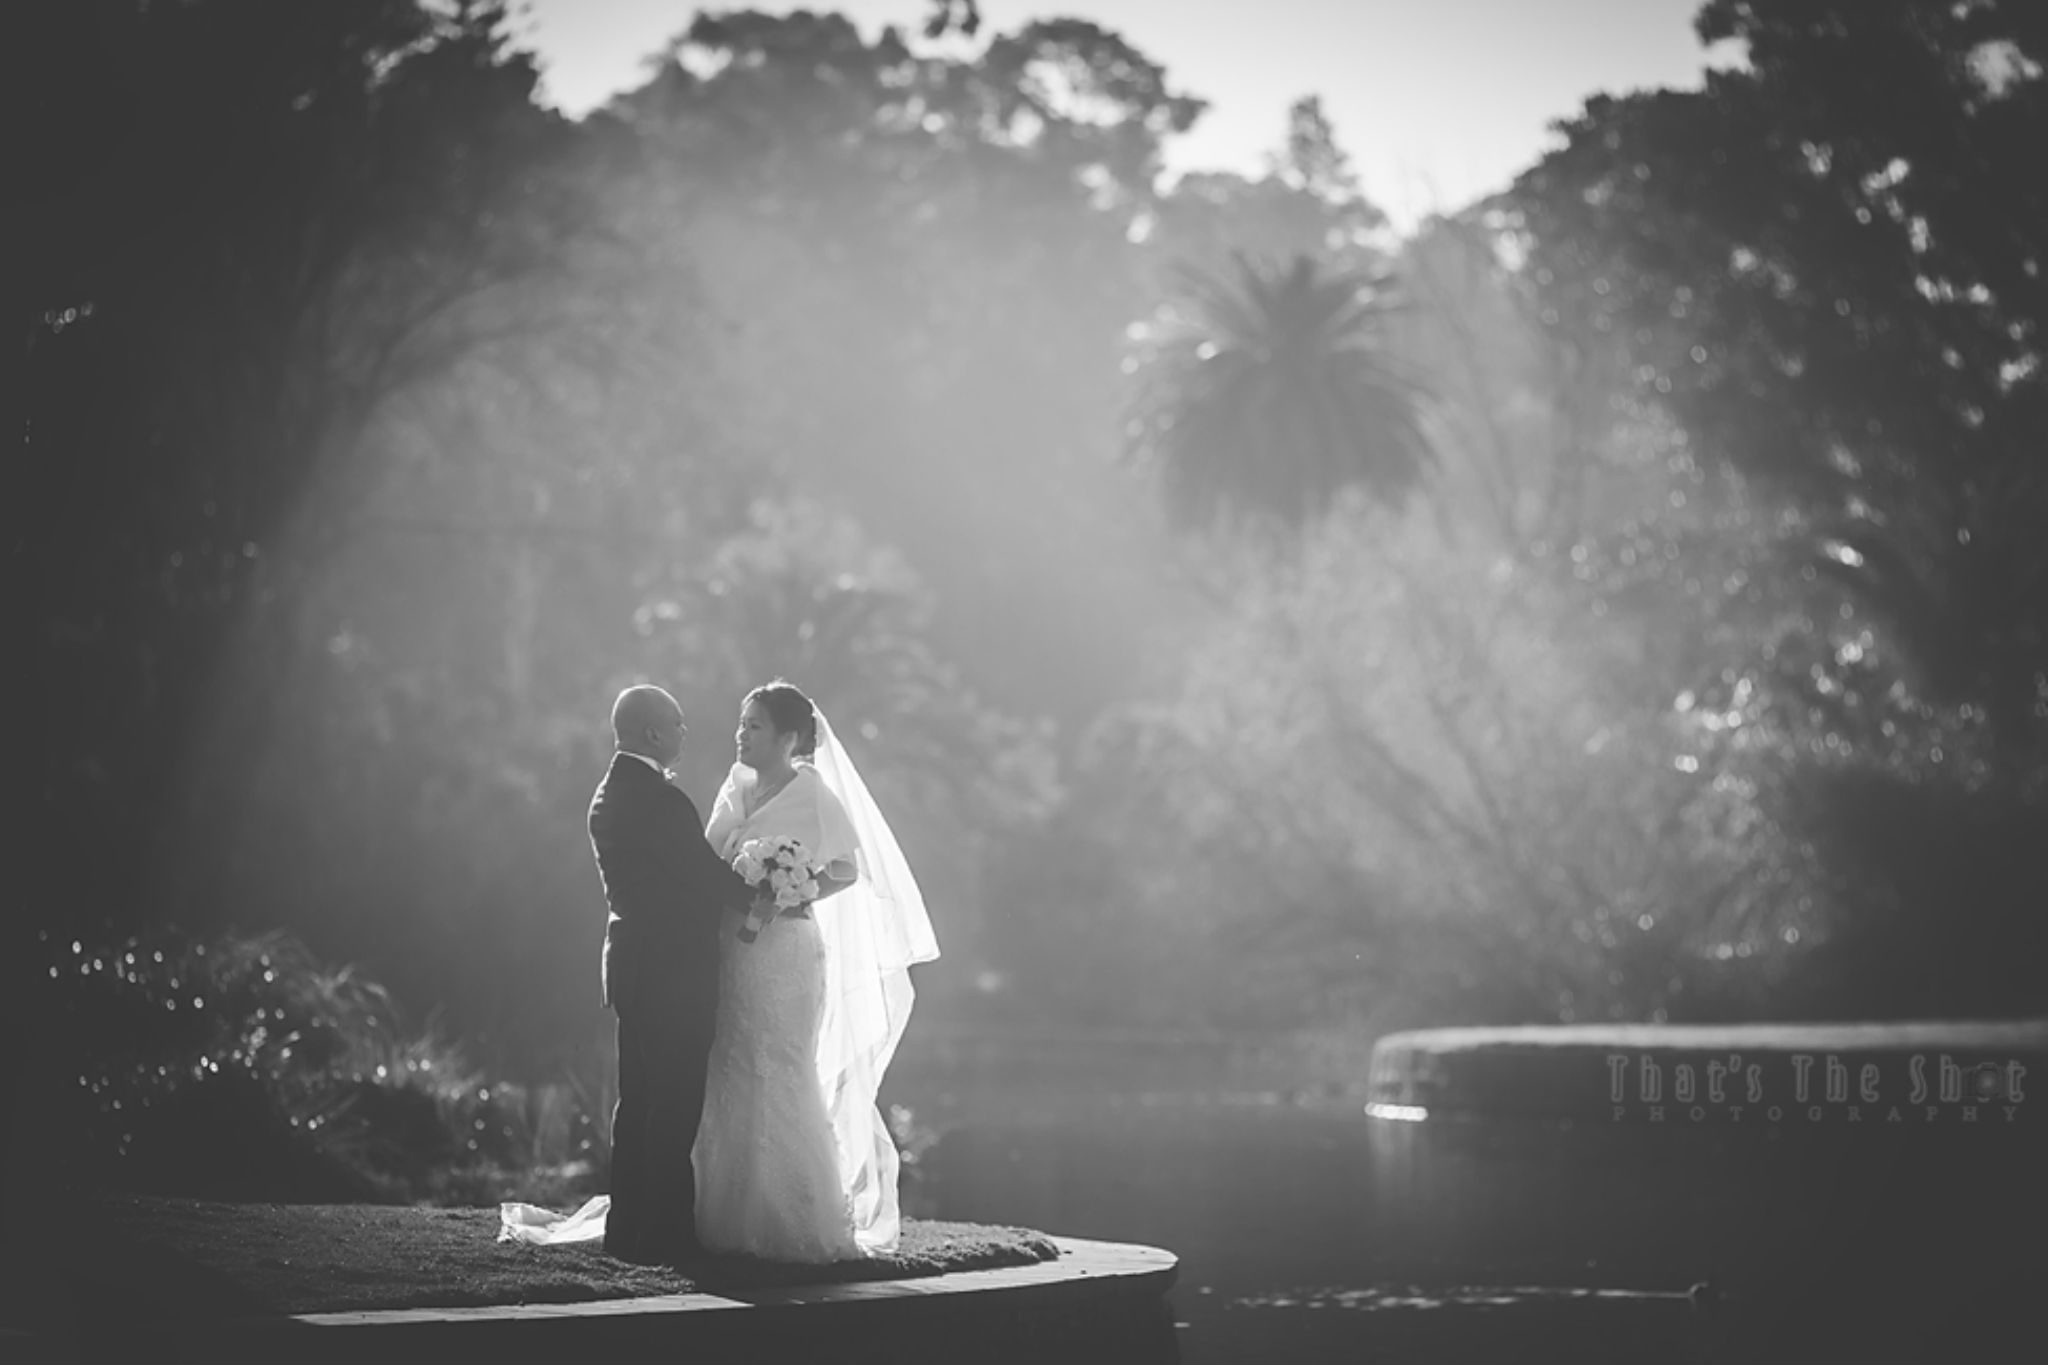 Wedding couple by the lake by ThatsTheShot